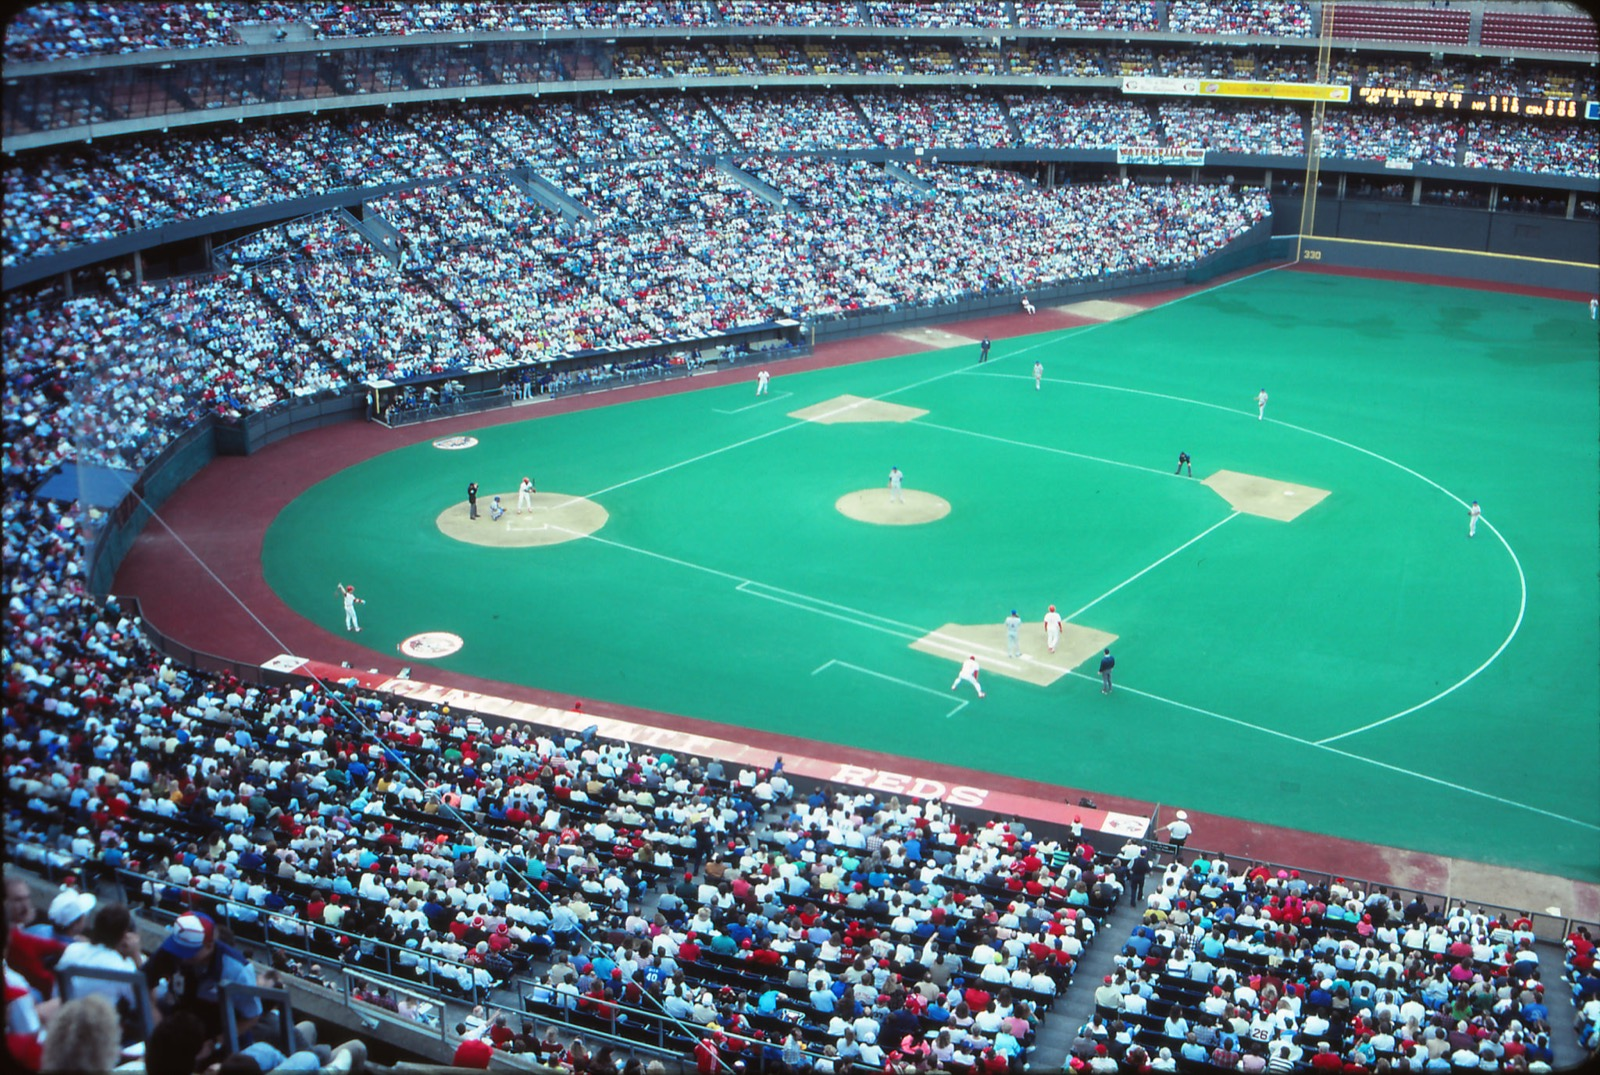 Riverfront Stadium, Downtown Cincinnati / Image courtesy of Flickr user mplstodd // Published: 3.12.18